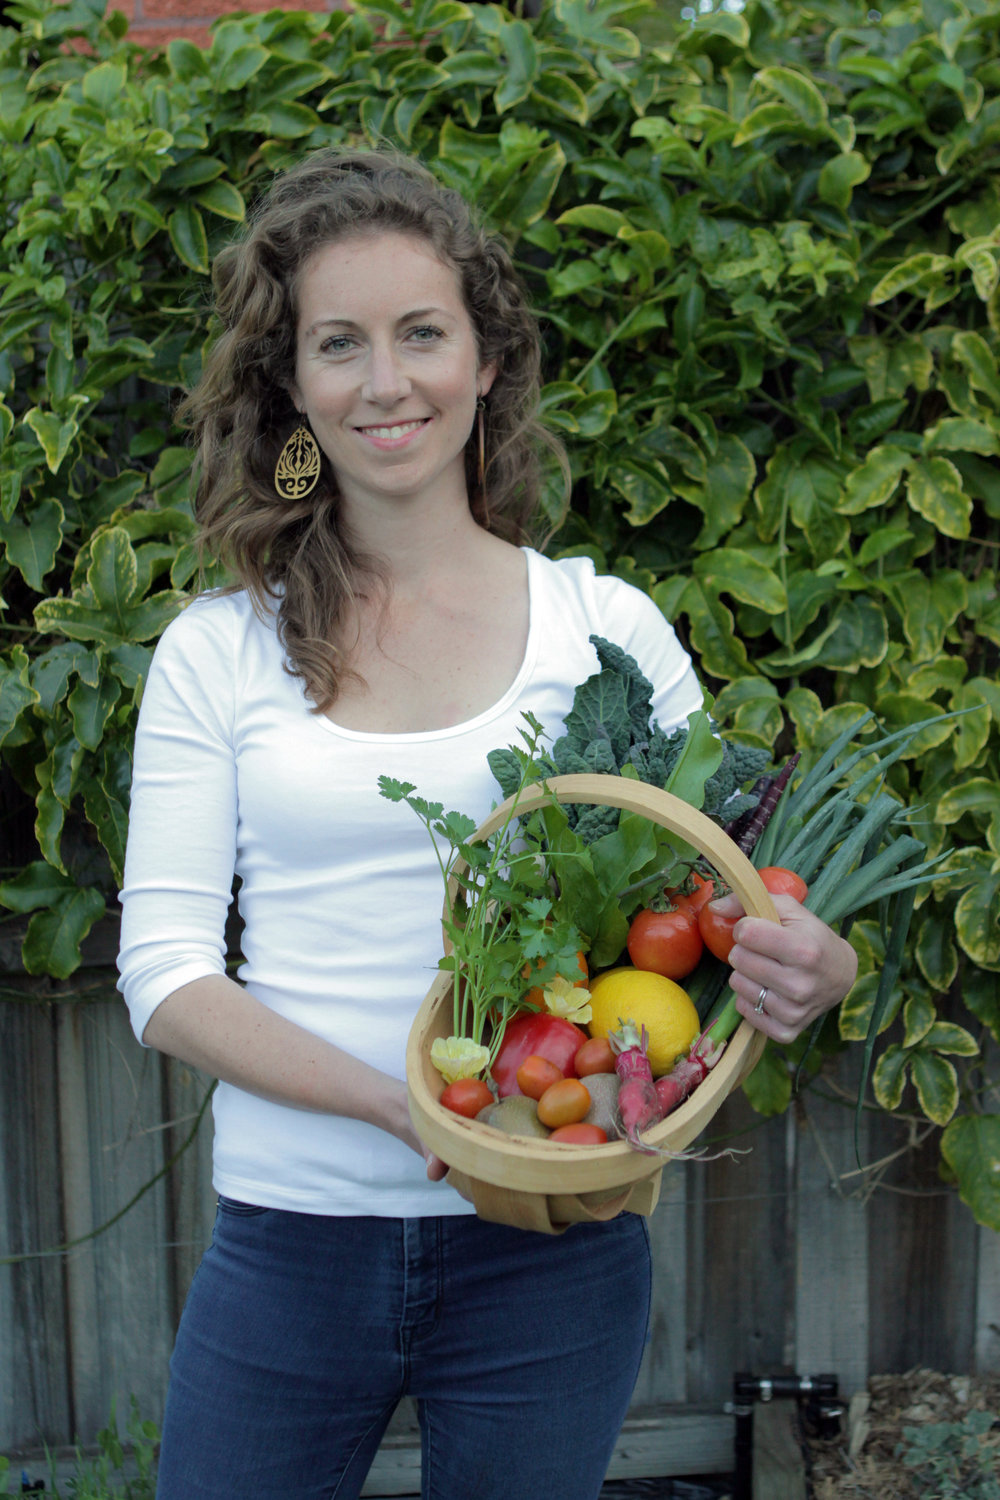 Laurie Green, Founder of Crop Swap